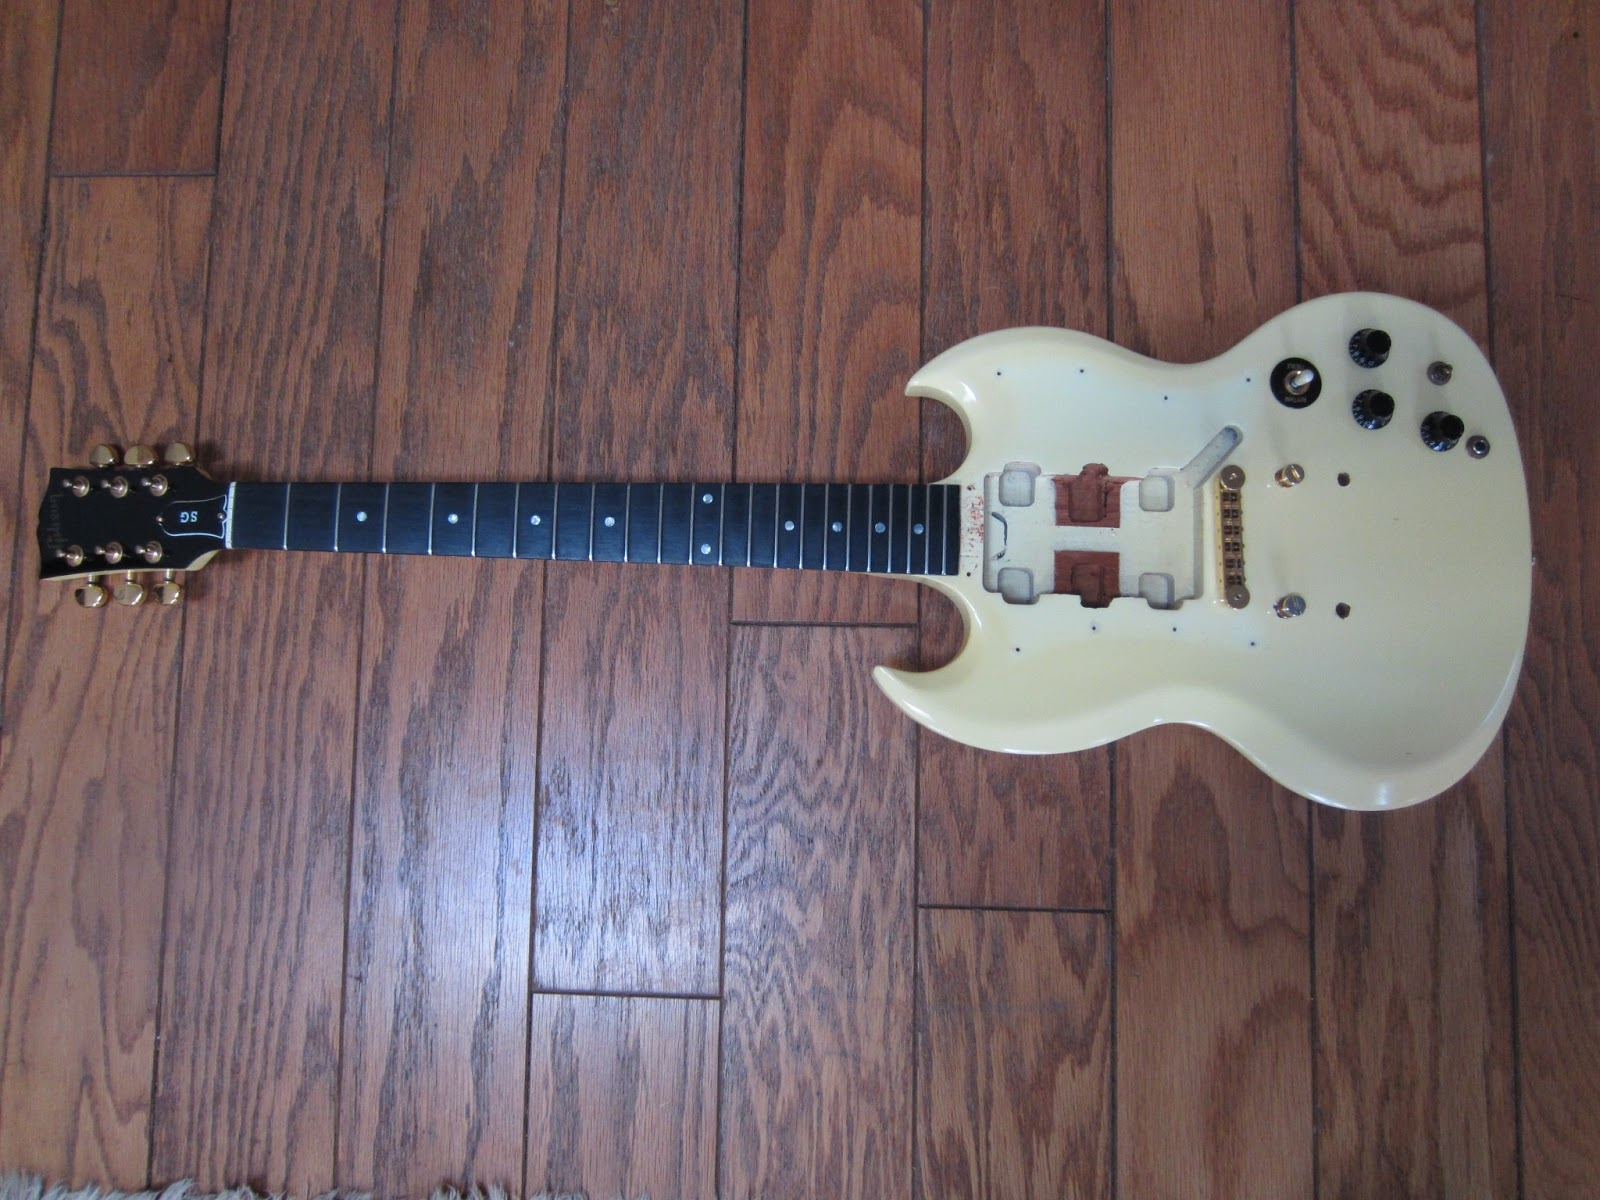 Jw Guitarworks 1999 Gibson Sg Project Andy Summers Telecaster Wiring Diagram Ebay Purchase At Reasonable Price Considering The Condition Basic With Some Wear And Cracks In Finish From Almost 15 Years Of Use